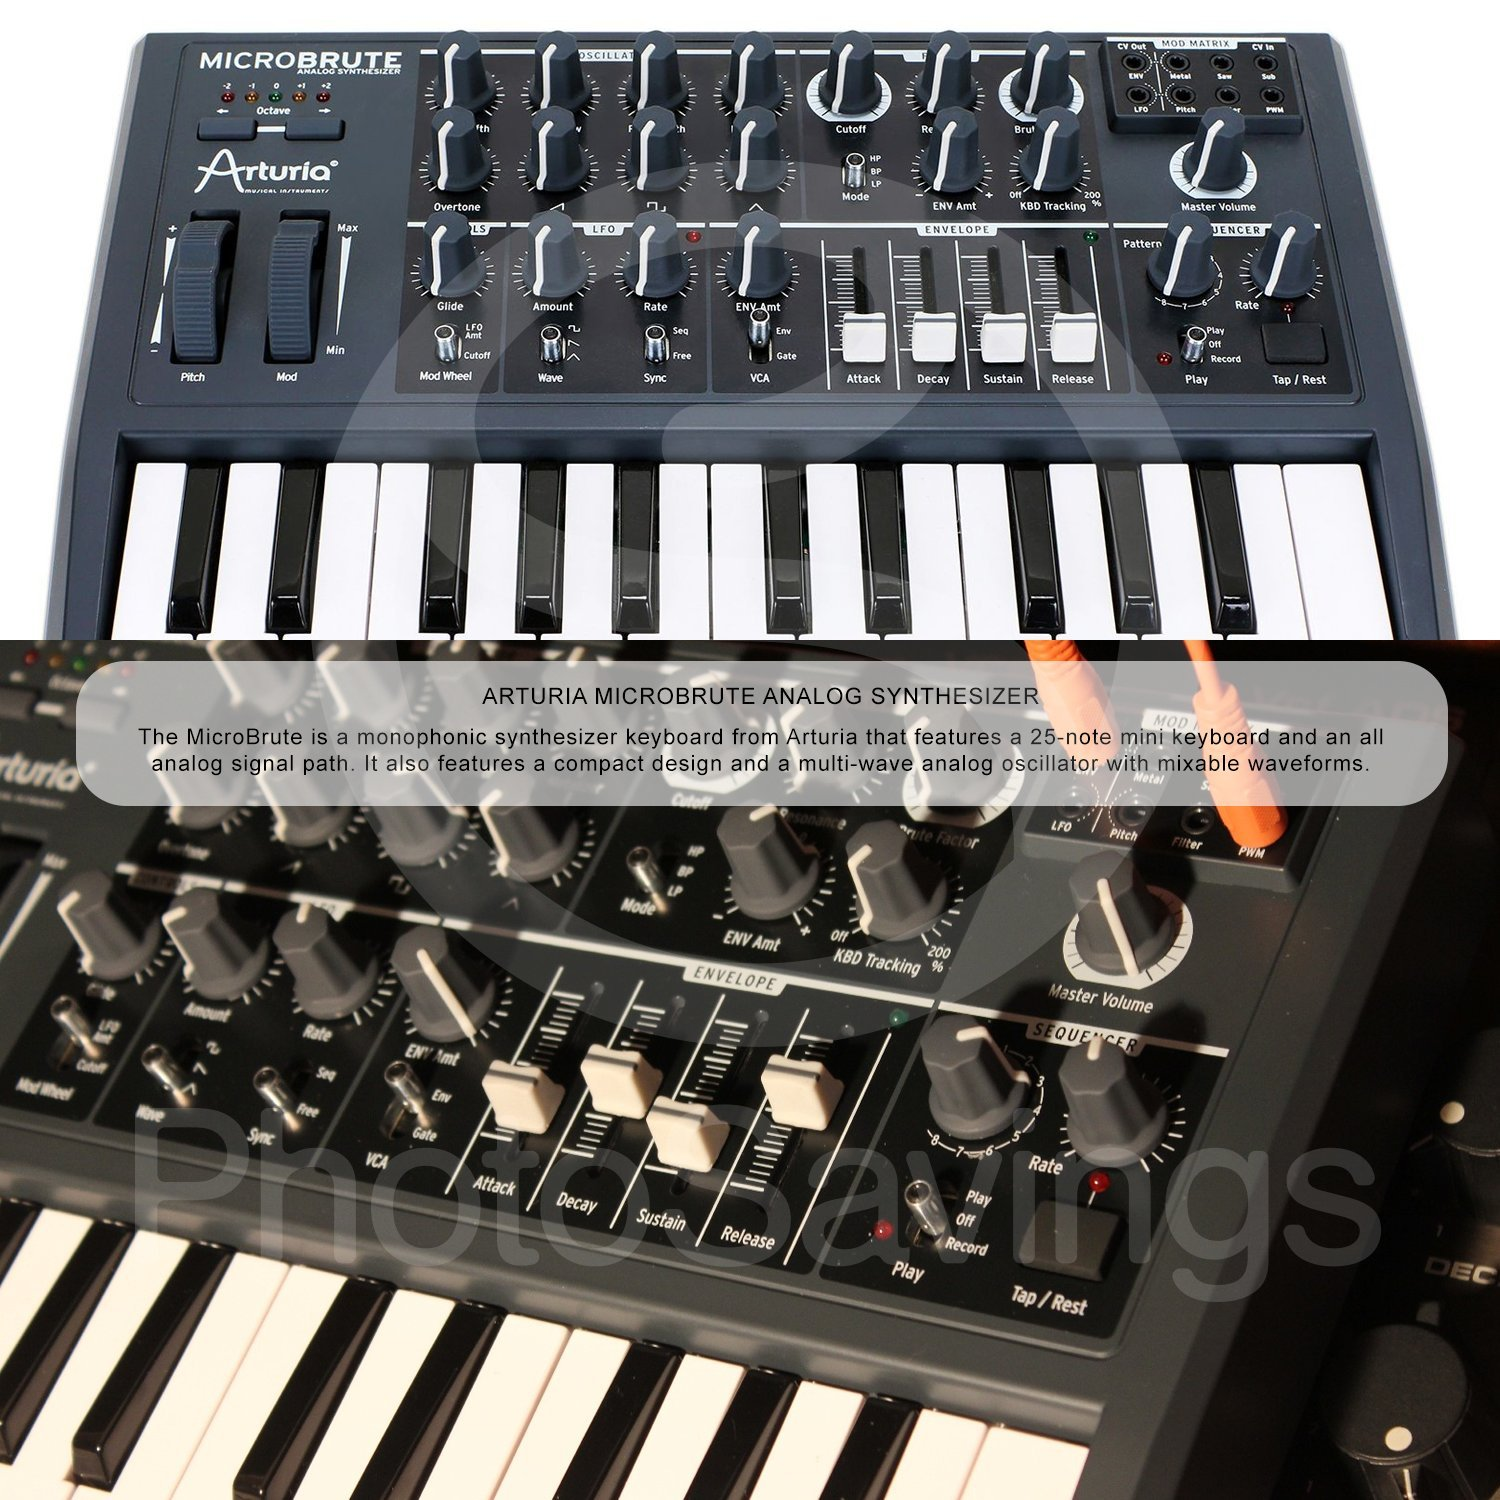 Arturia Microbrute 25-Note Mini Keyboard Analog Synthesizer and Accessory Bundle w/Stereo Headphones + Adapter + Cables by Photo Savings (Image #2)